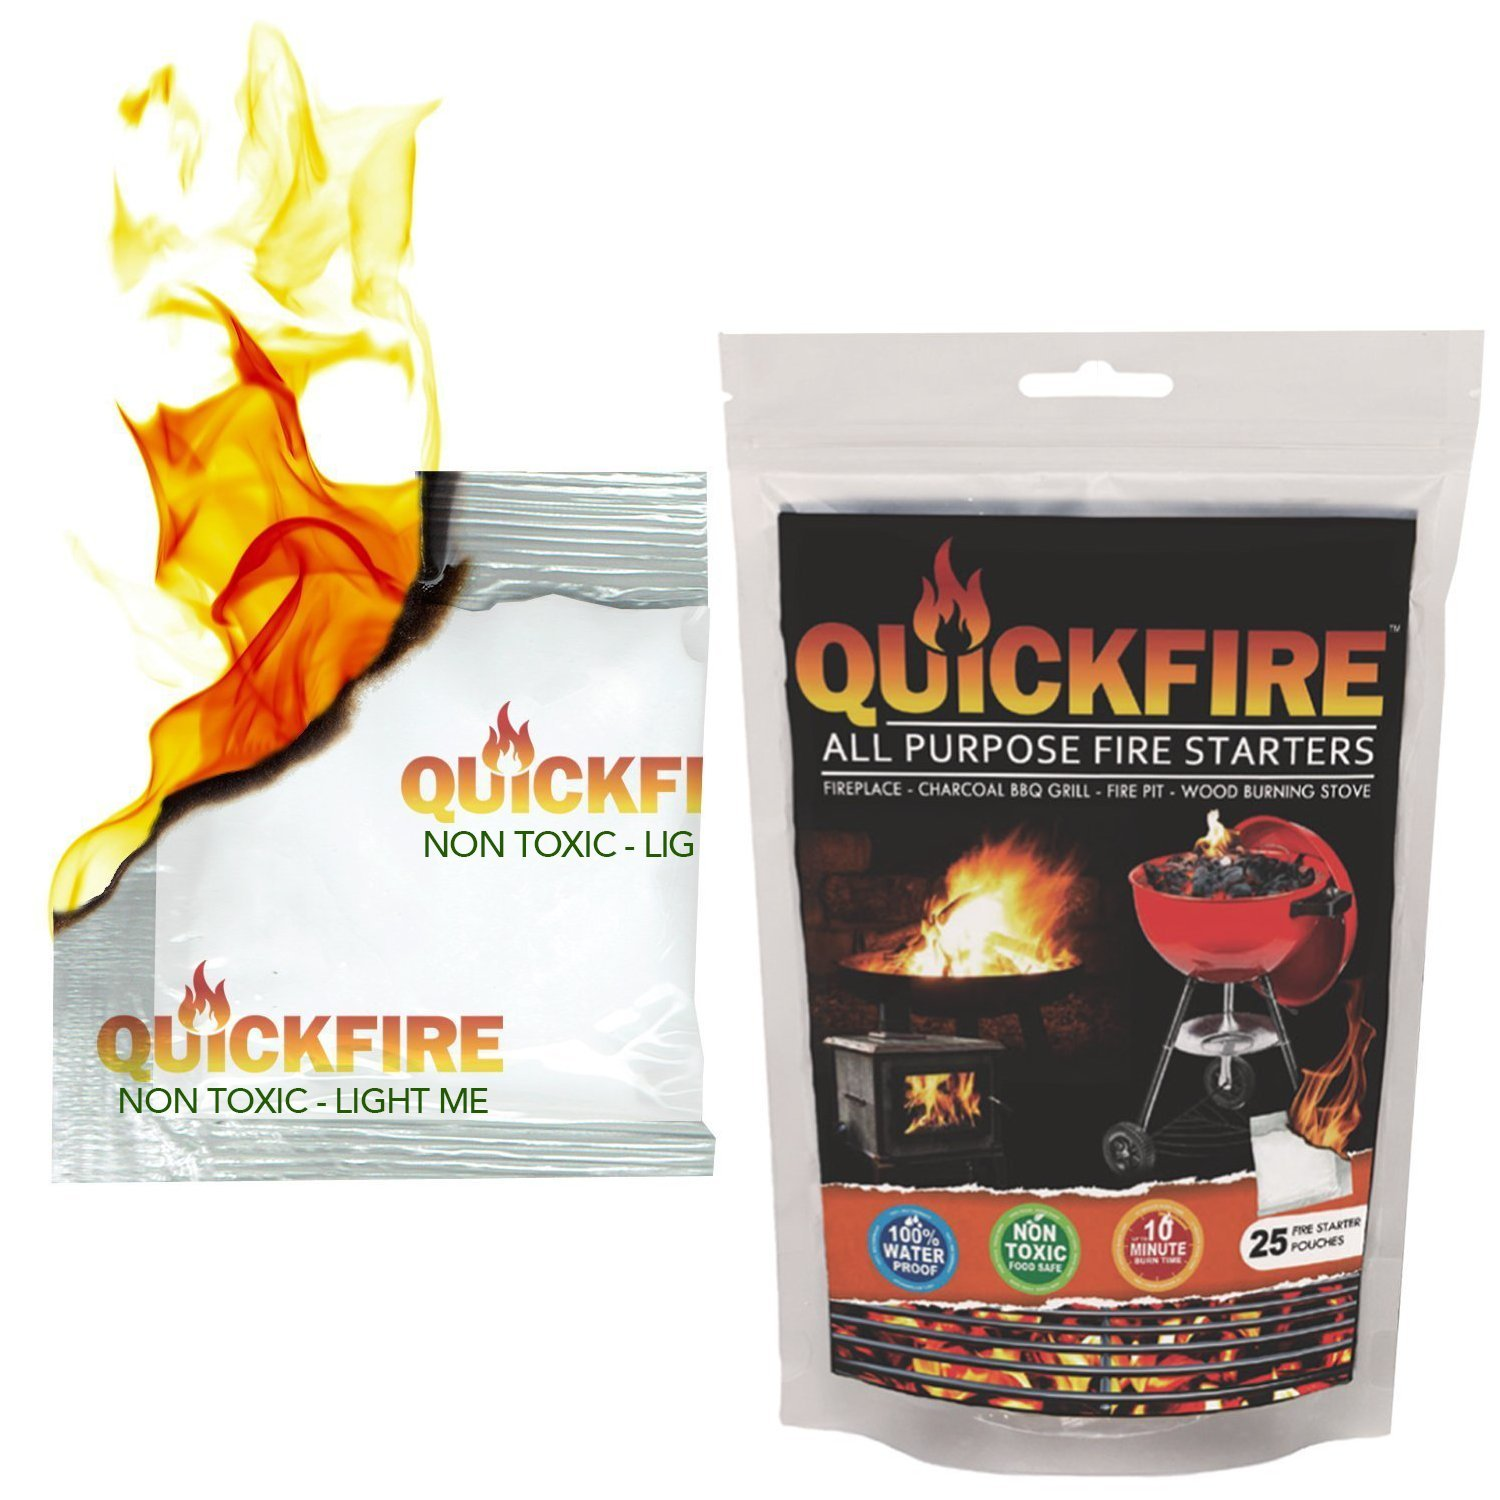 QuickFire - FireStarters. Burns up to 10 Min at over 750° - 100% Waterproof, Odorless And Non-Toxic - 25 Pack